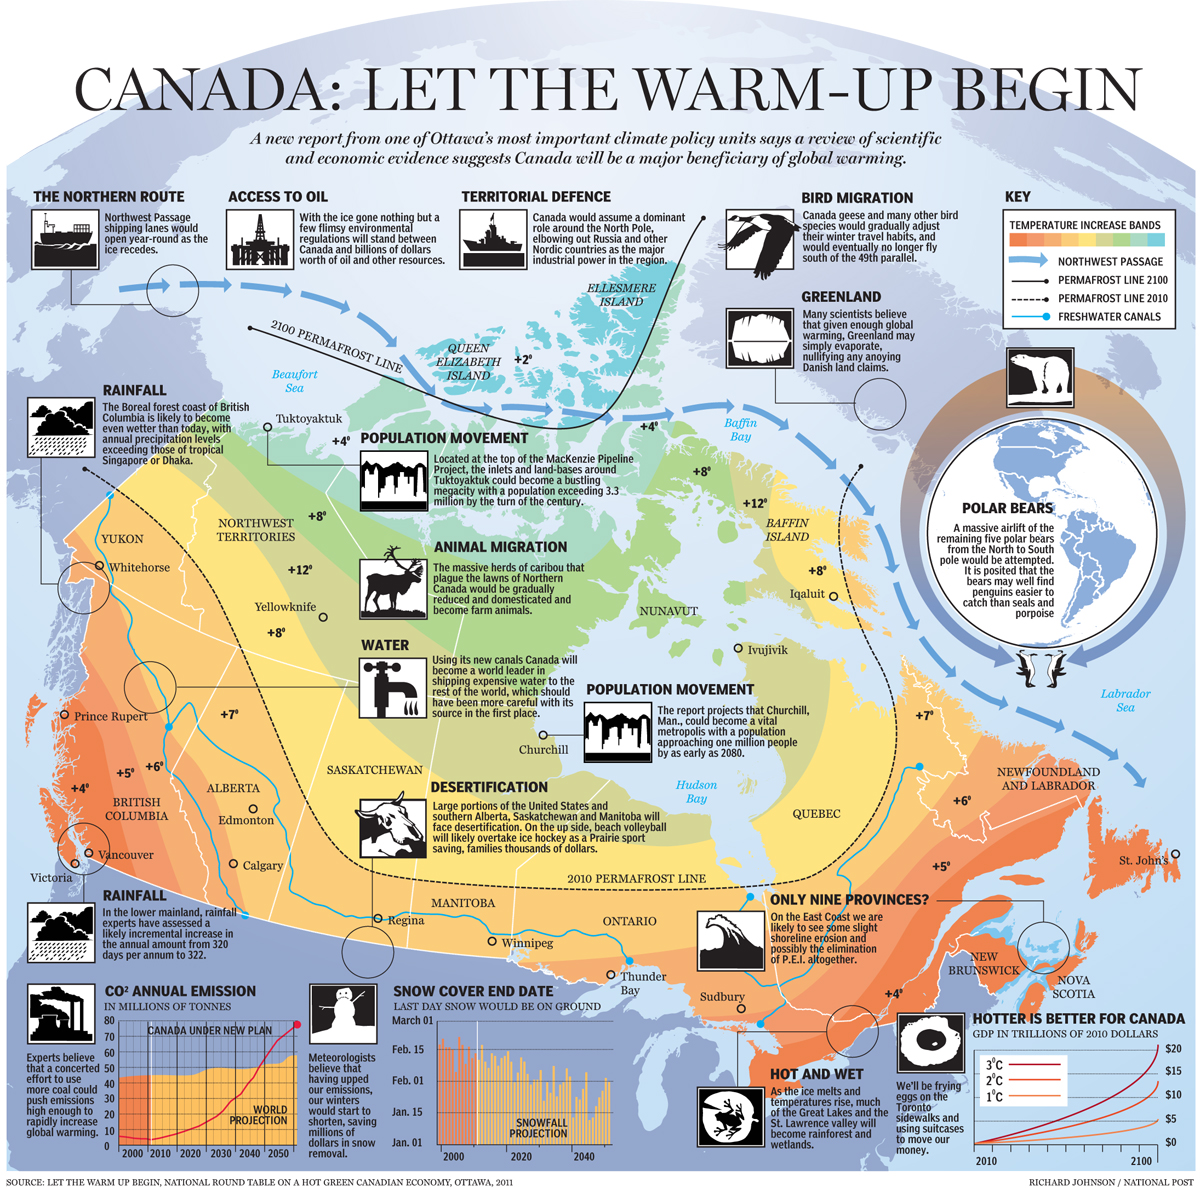 Canada: Let The Warm-Up Begin